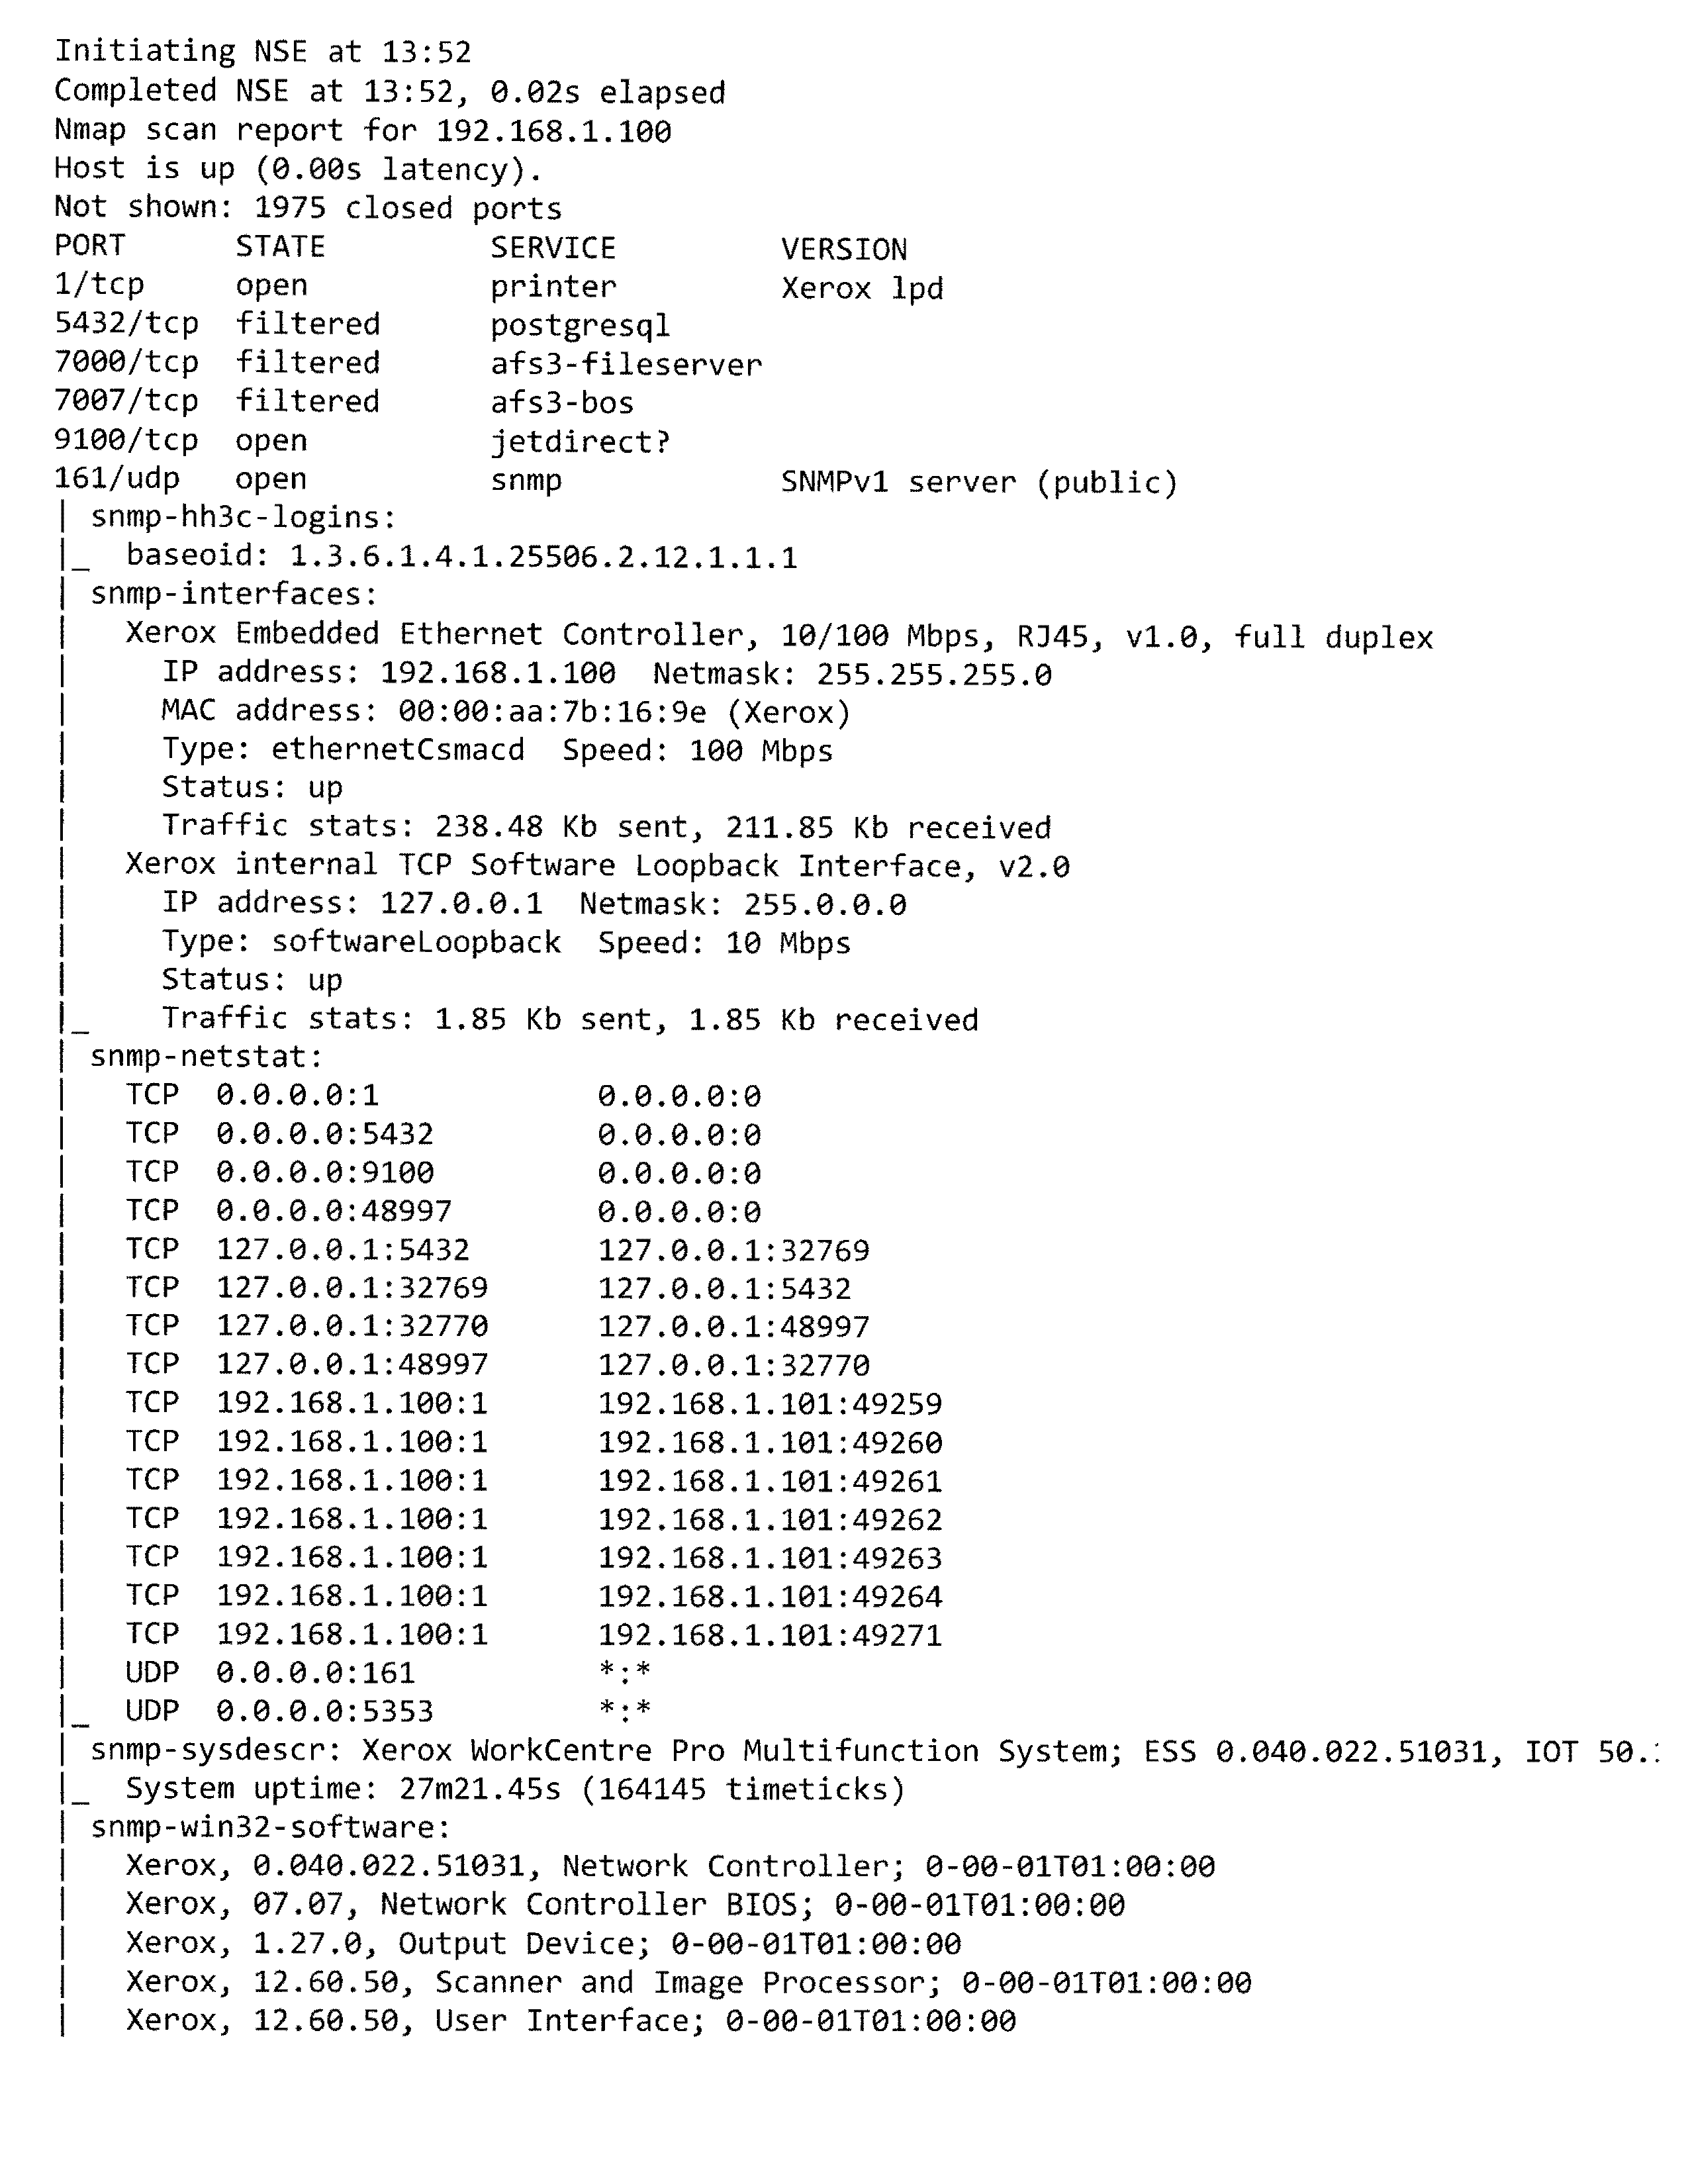 232 report nmap_Page_2.png